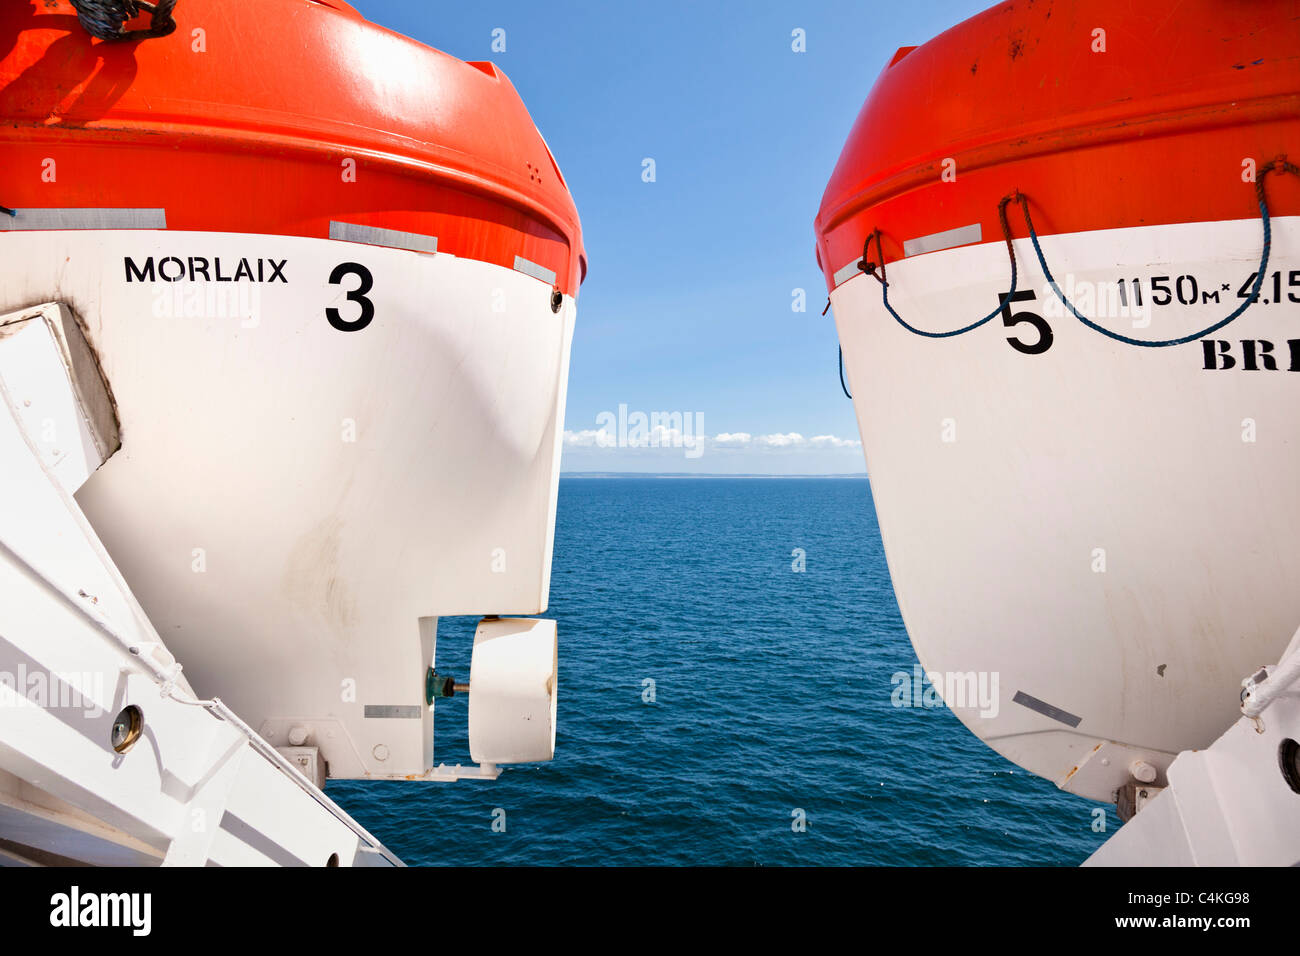 Lifeboats on board a cross channel ferry France Europe - Stock Image